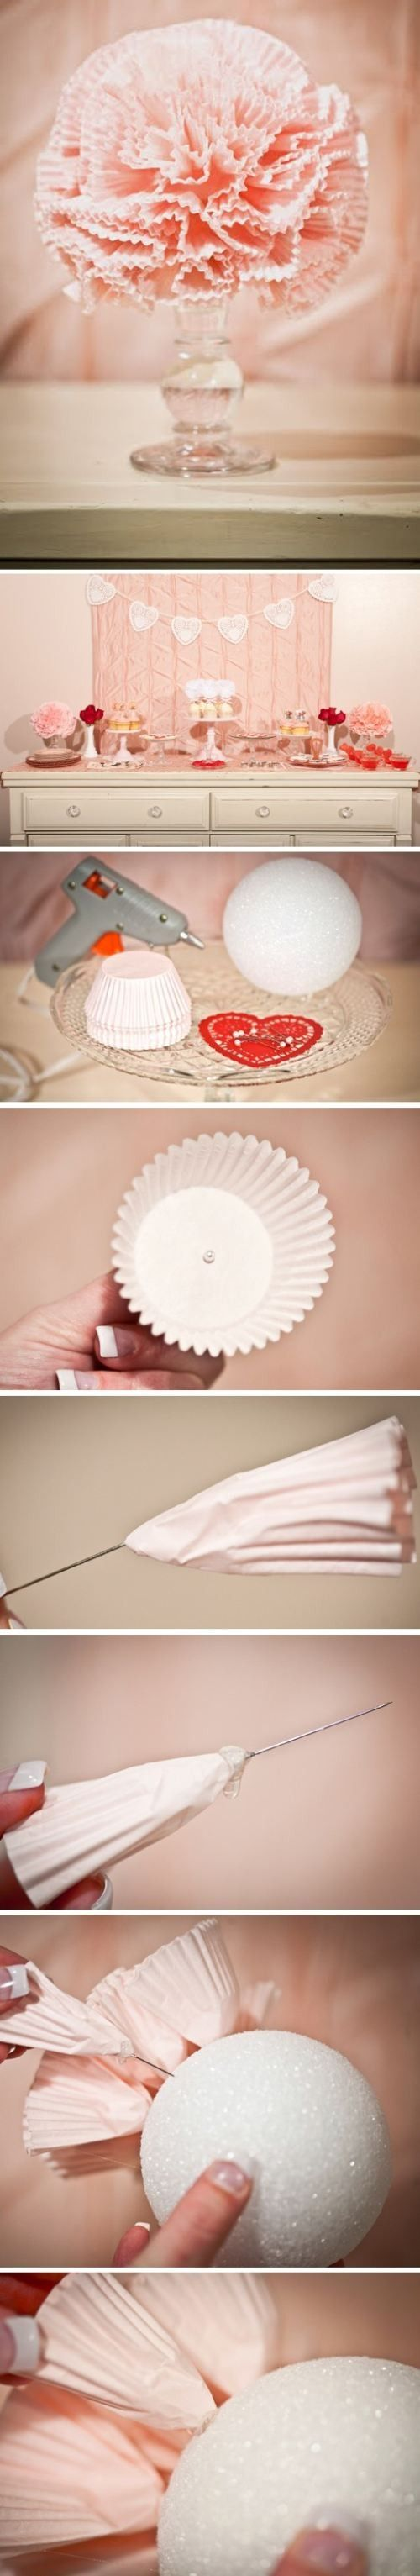 DIY Centerpieces using cupcake papers! LOVE THIS!!